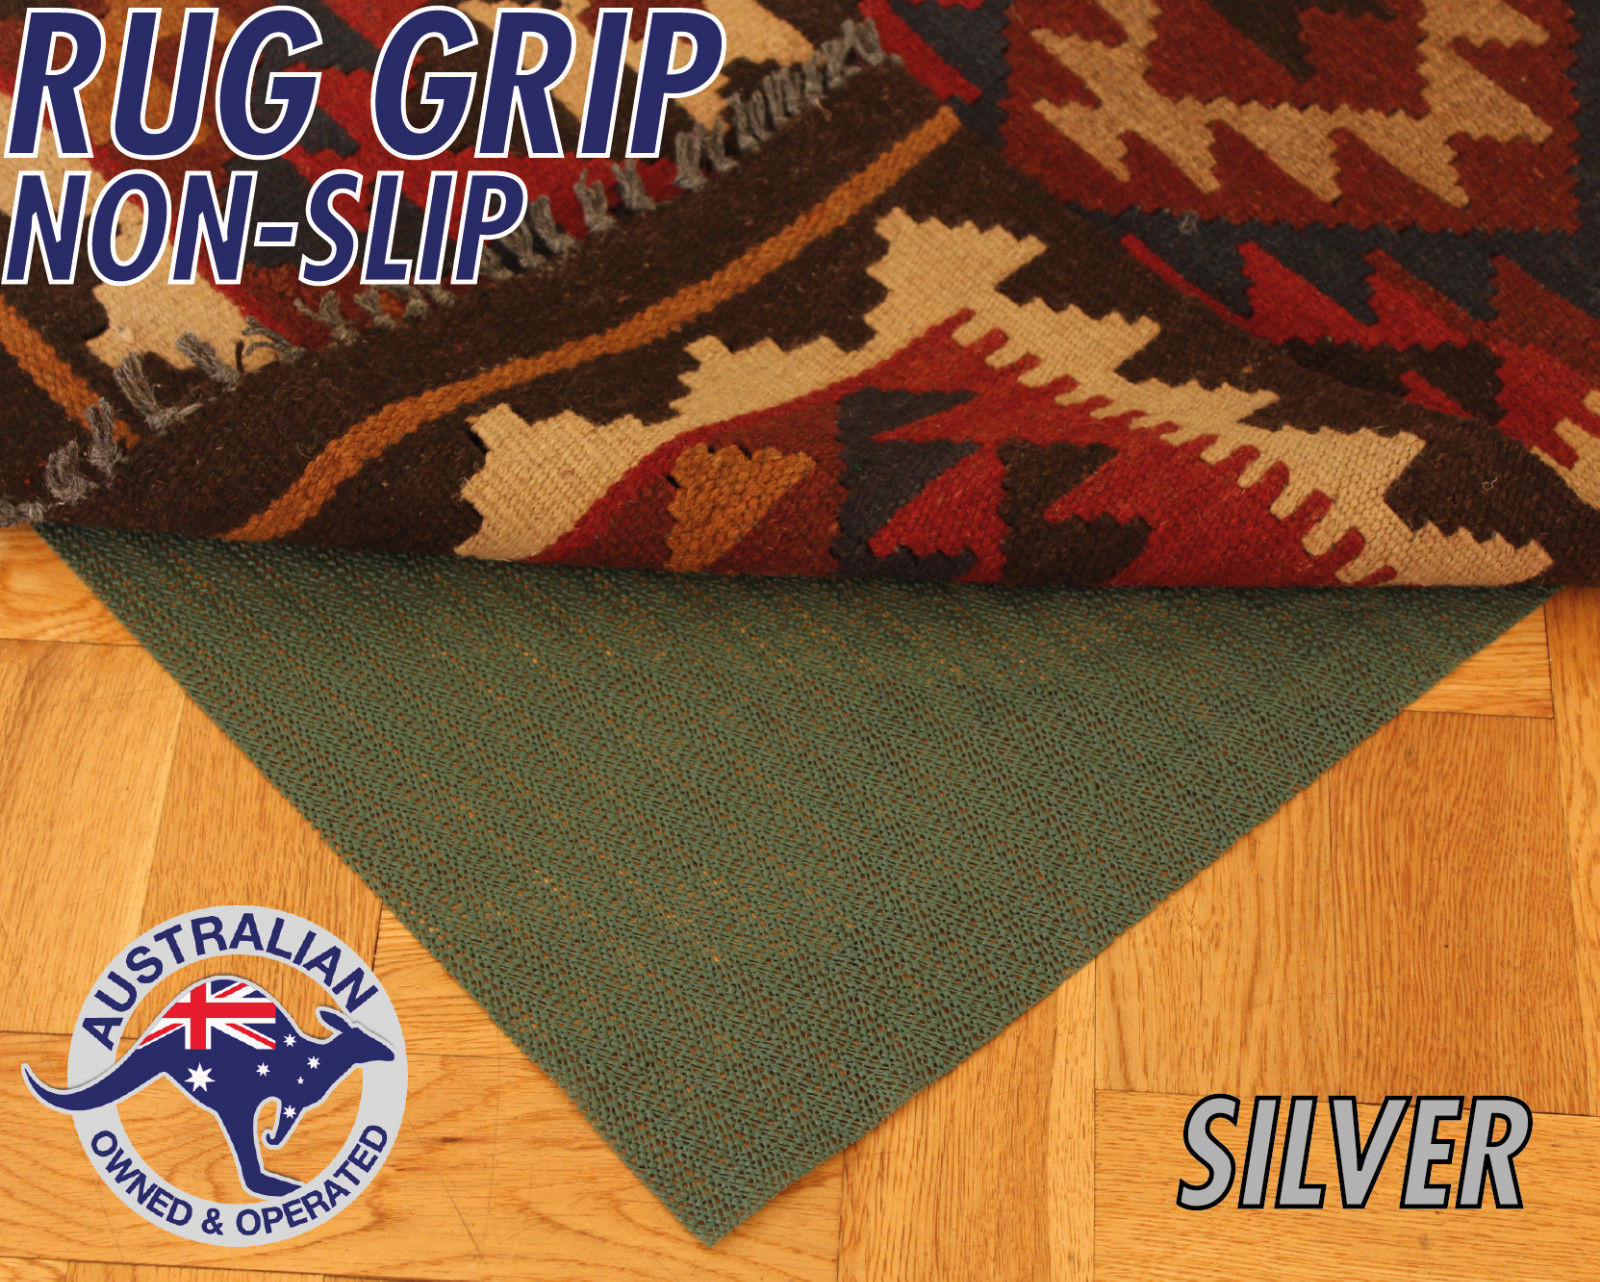 silver grade rug grip non slip underlay pad for rugs and runners. Black Bedroom Furniture Sets. Home Design Ideas